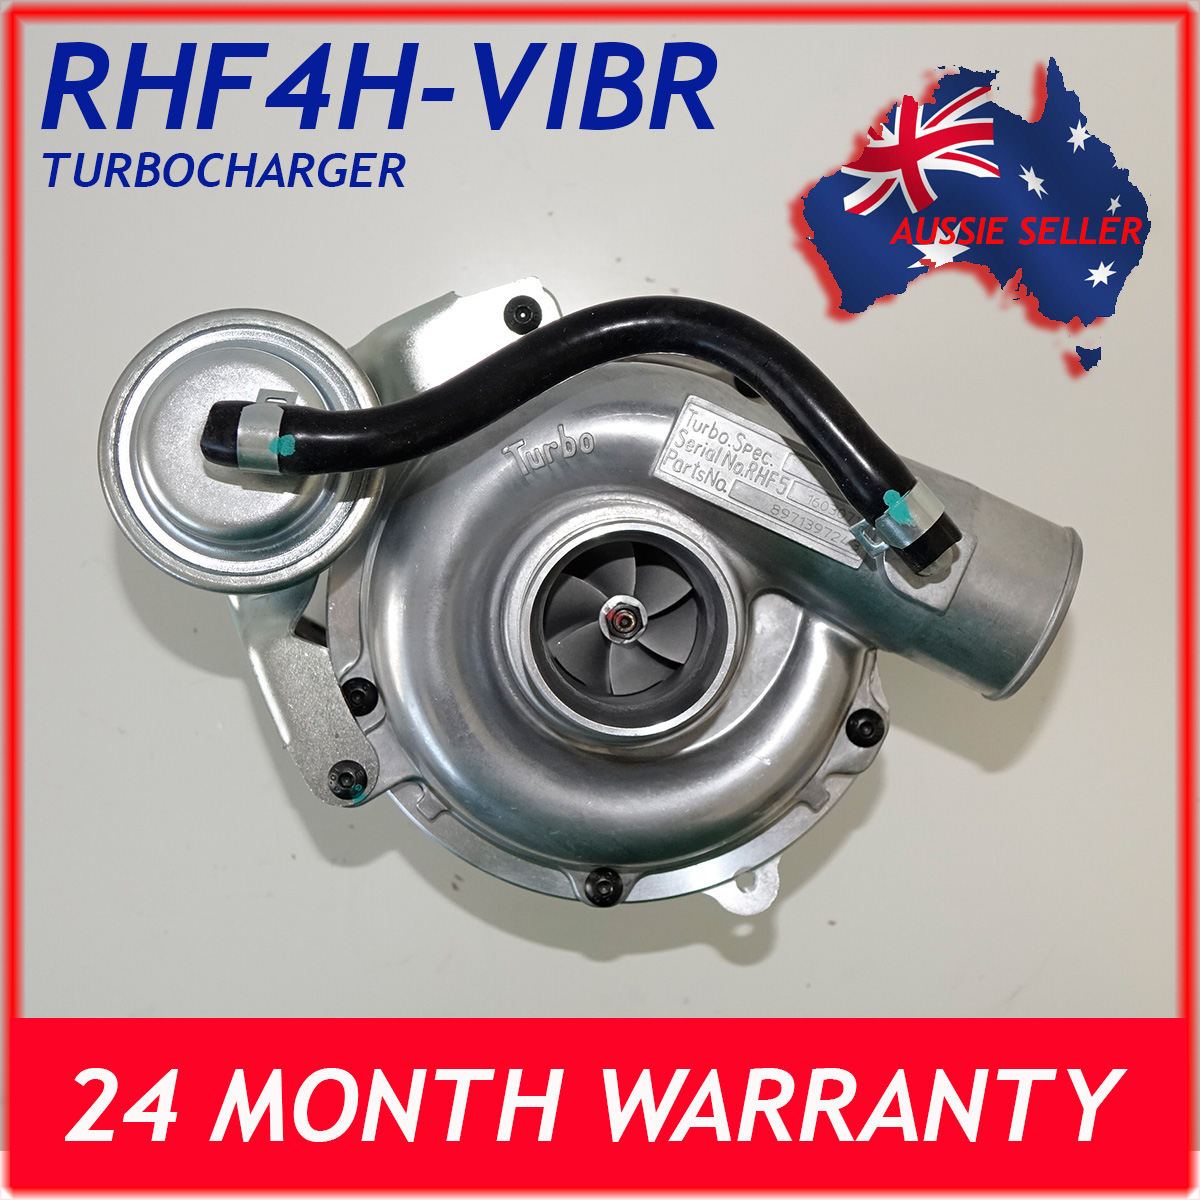 holden-rodeo-vibr-rhf4h-turbocharger-compressor-main2